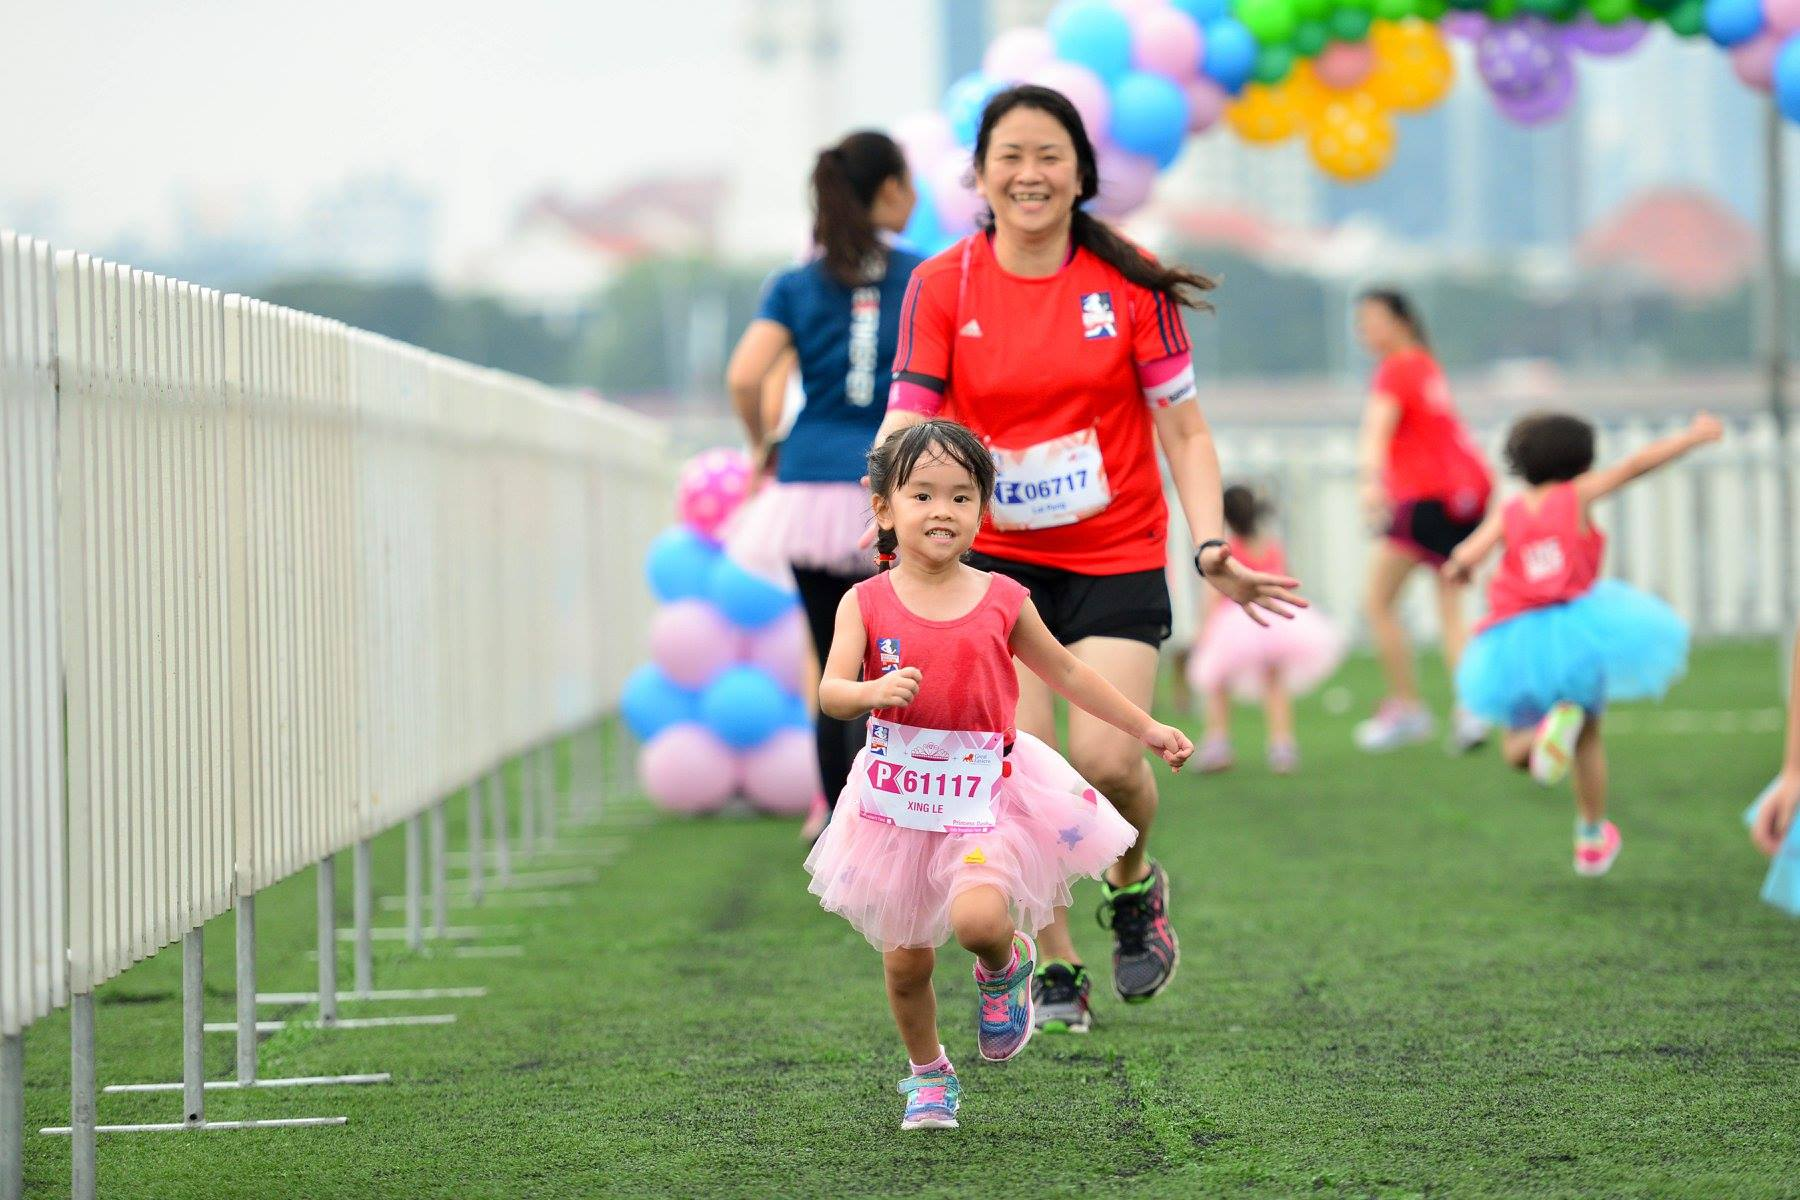 Photo courtesy: Great Eastern Women's Run